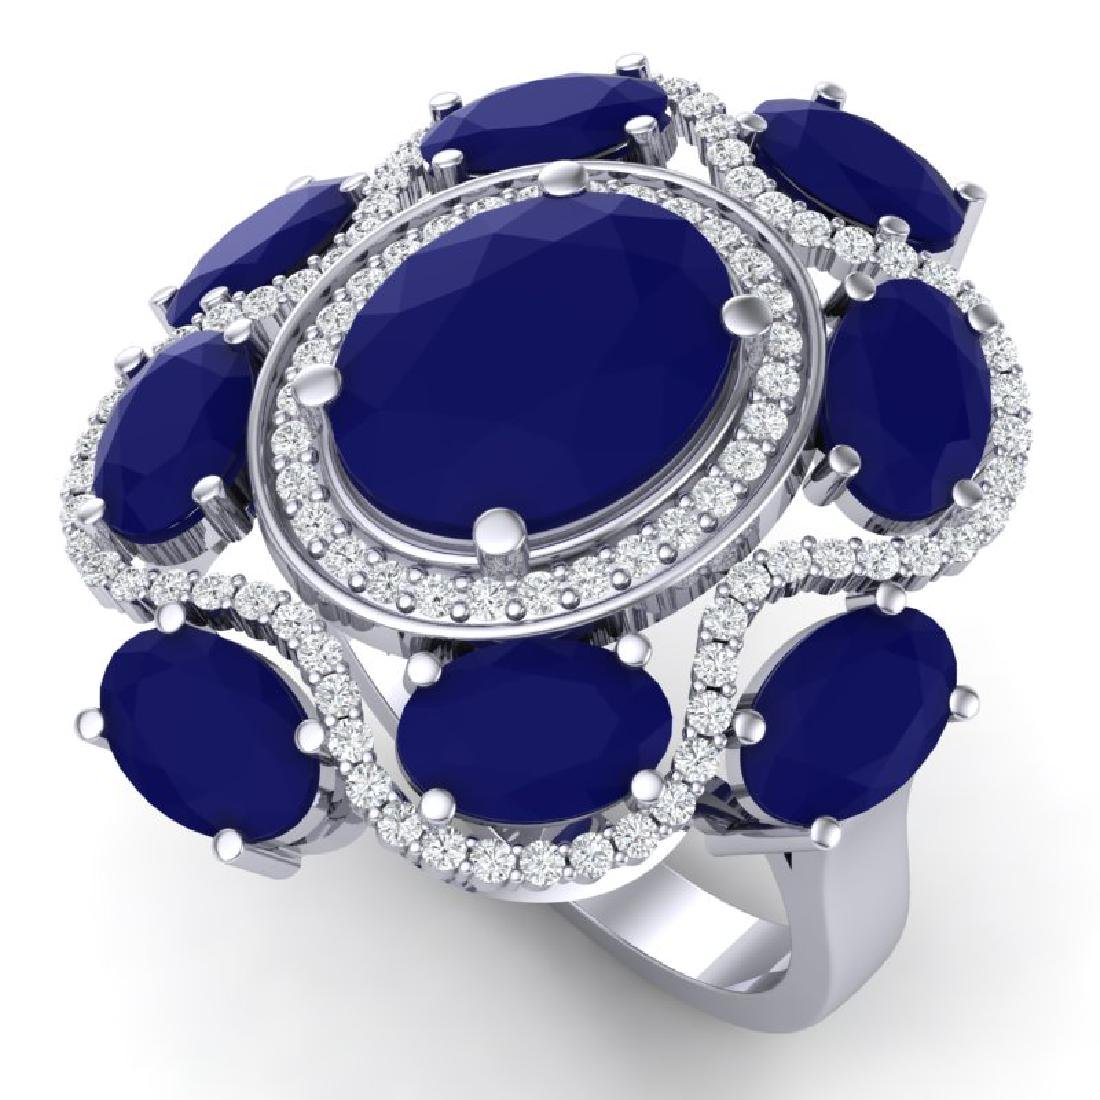 9.86 CTW Royalty Designer Sapphire & VS Diamond Ring